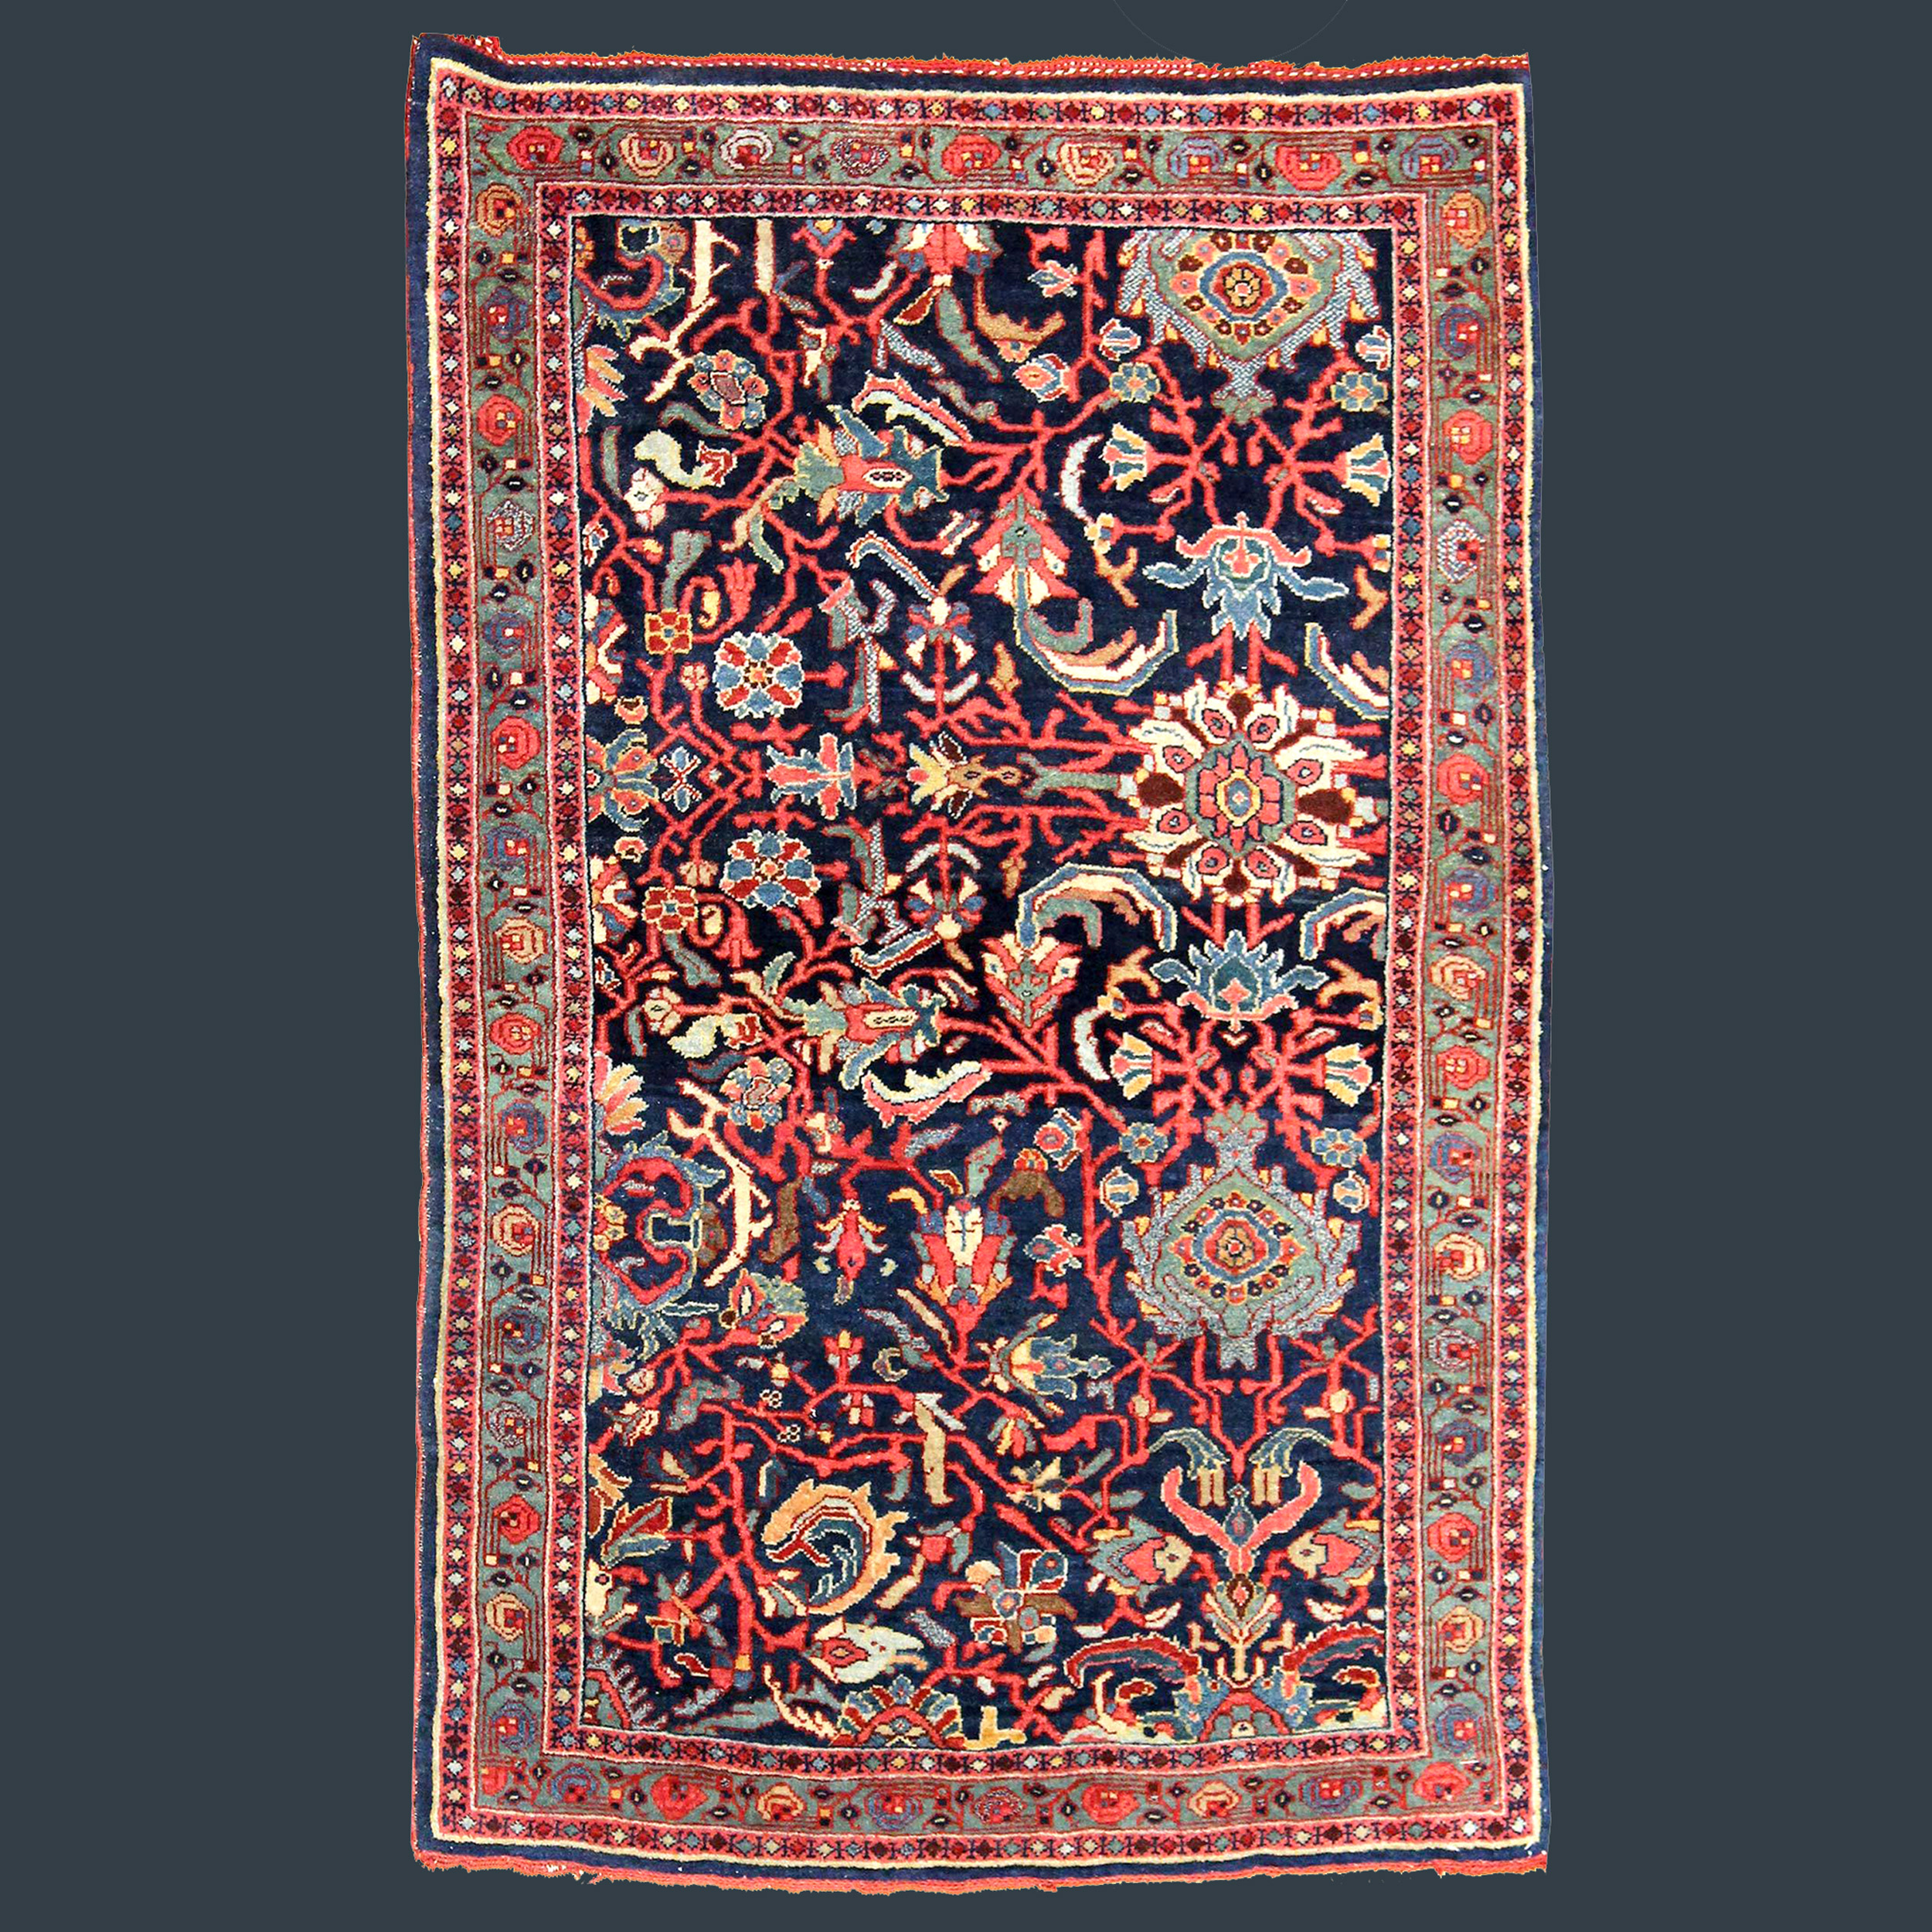 Antique Persian Bidjar rug with a palmette design on a navy blue field with a green border, possibly a Sampler or Wagireh, northwest Persia, circa 1910